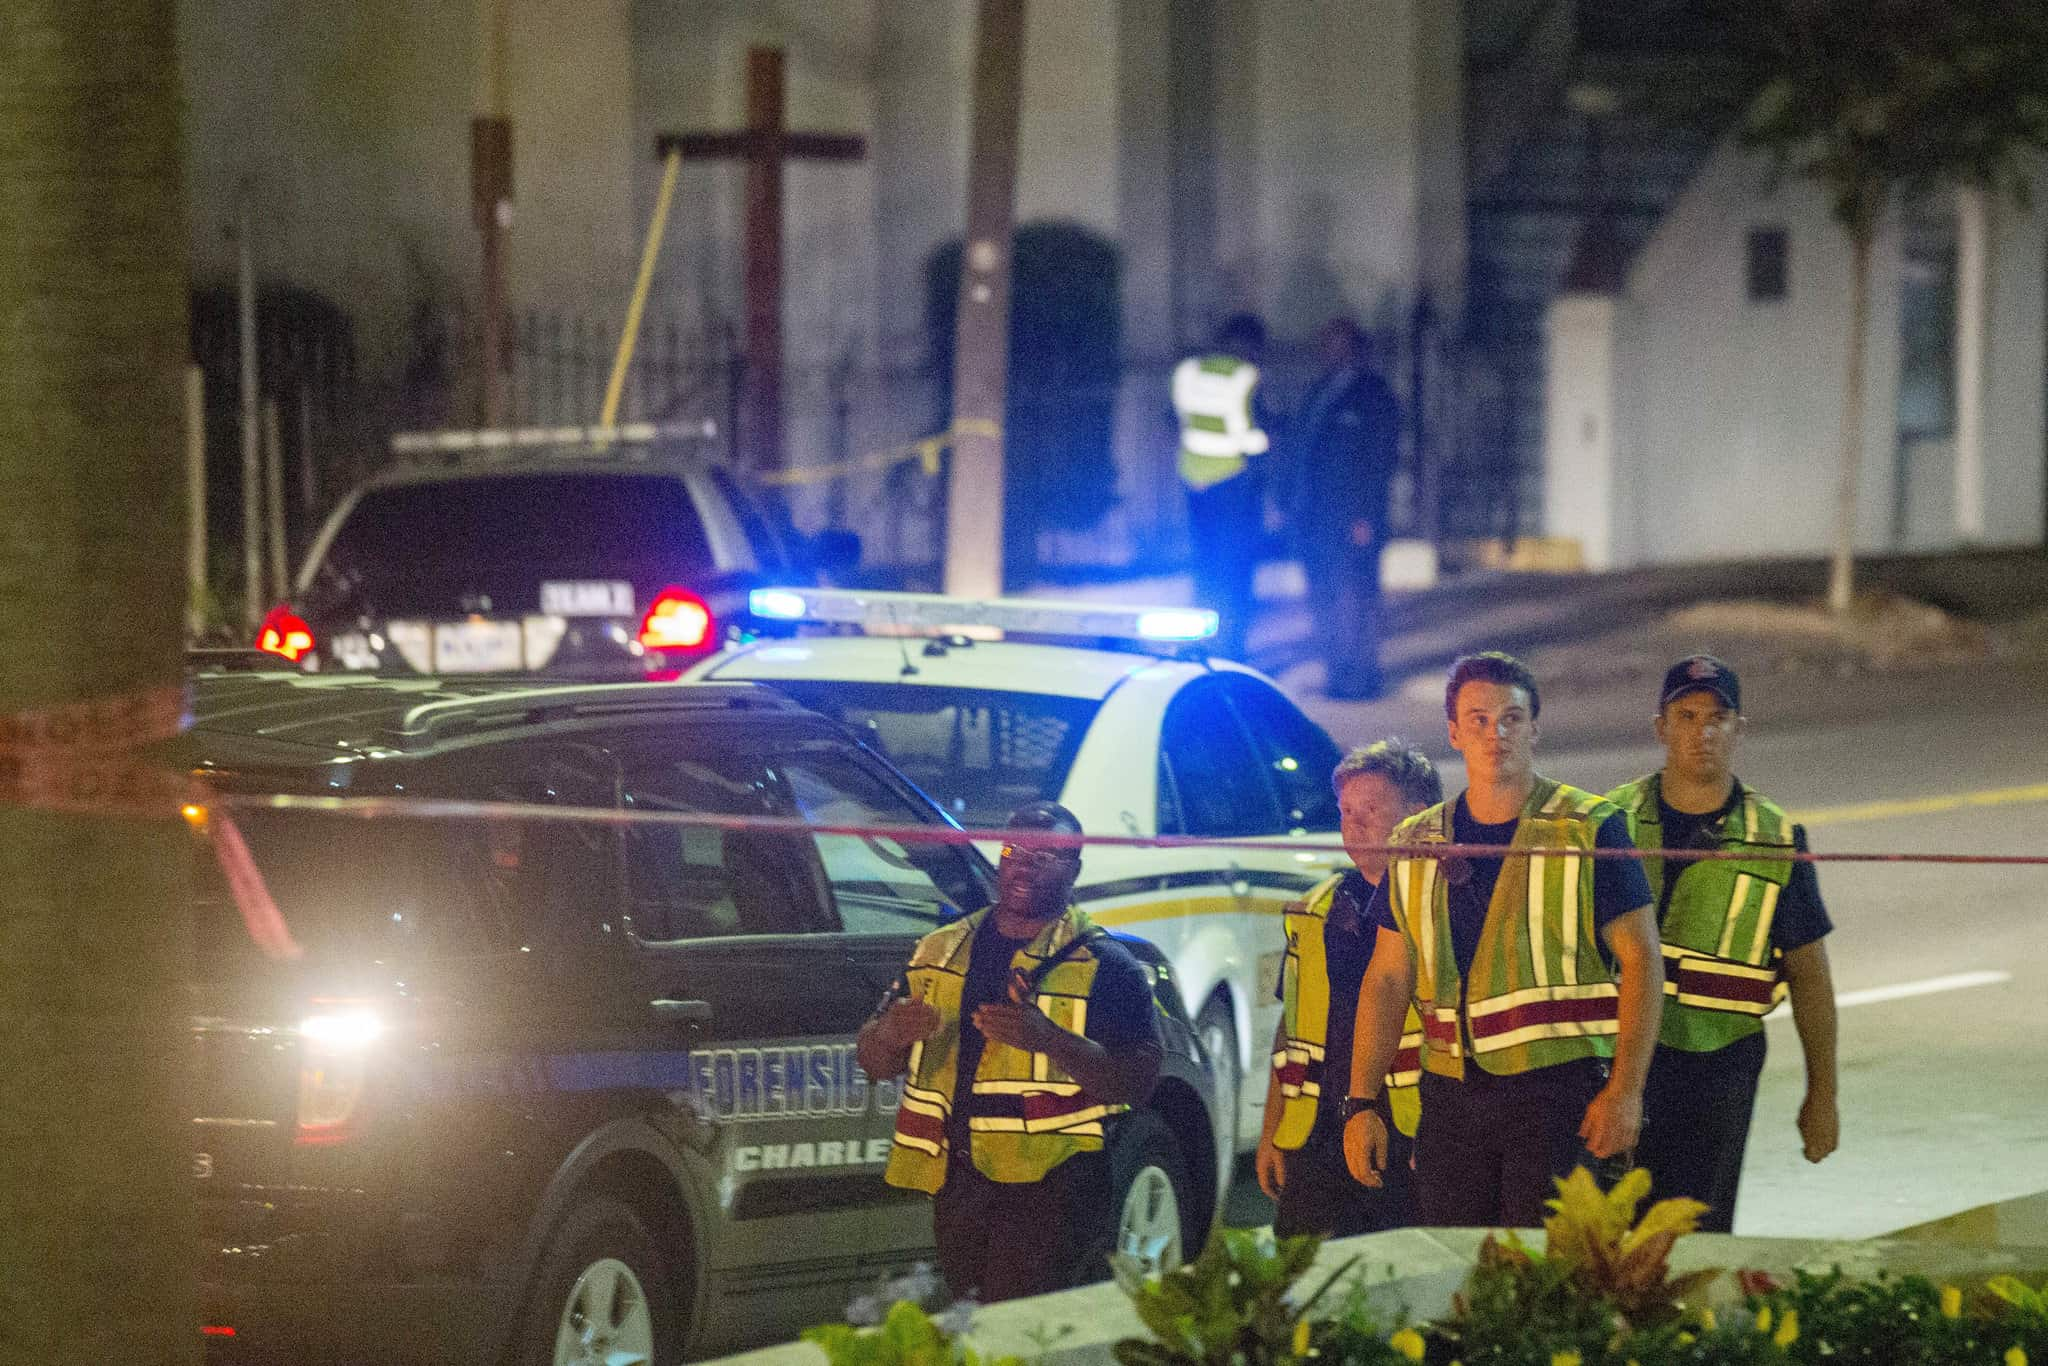 Nine Die During Probable Hate Crime Shooting At South Carolina Church